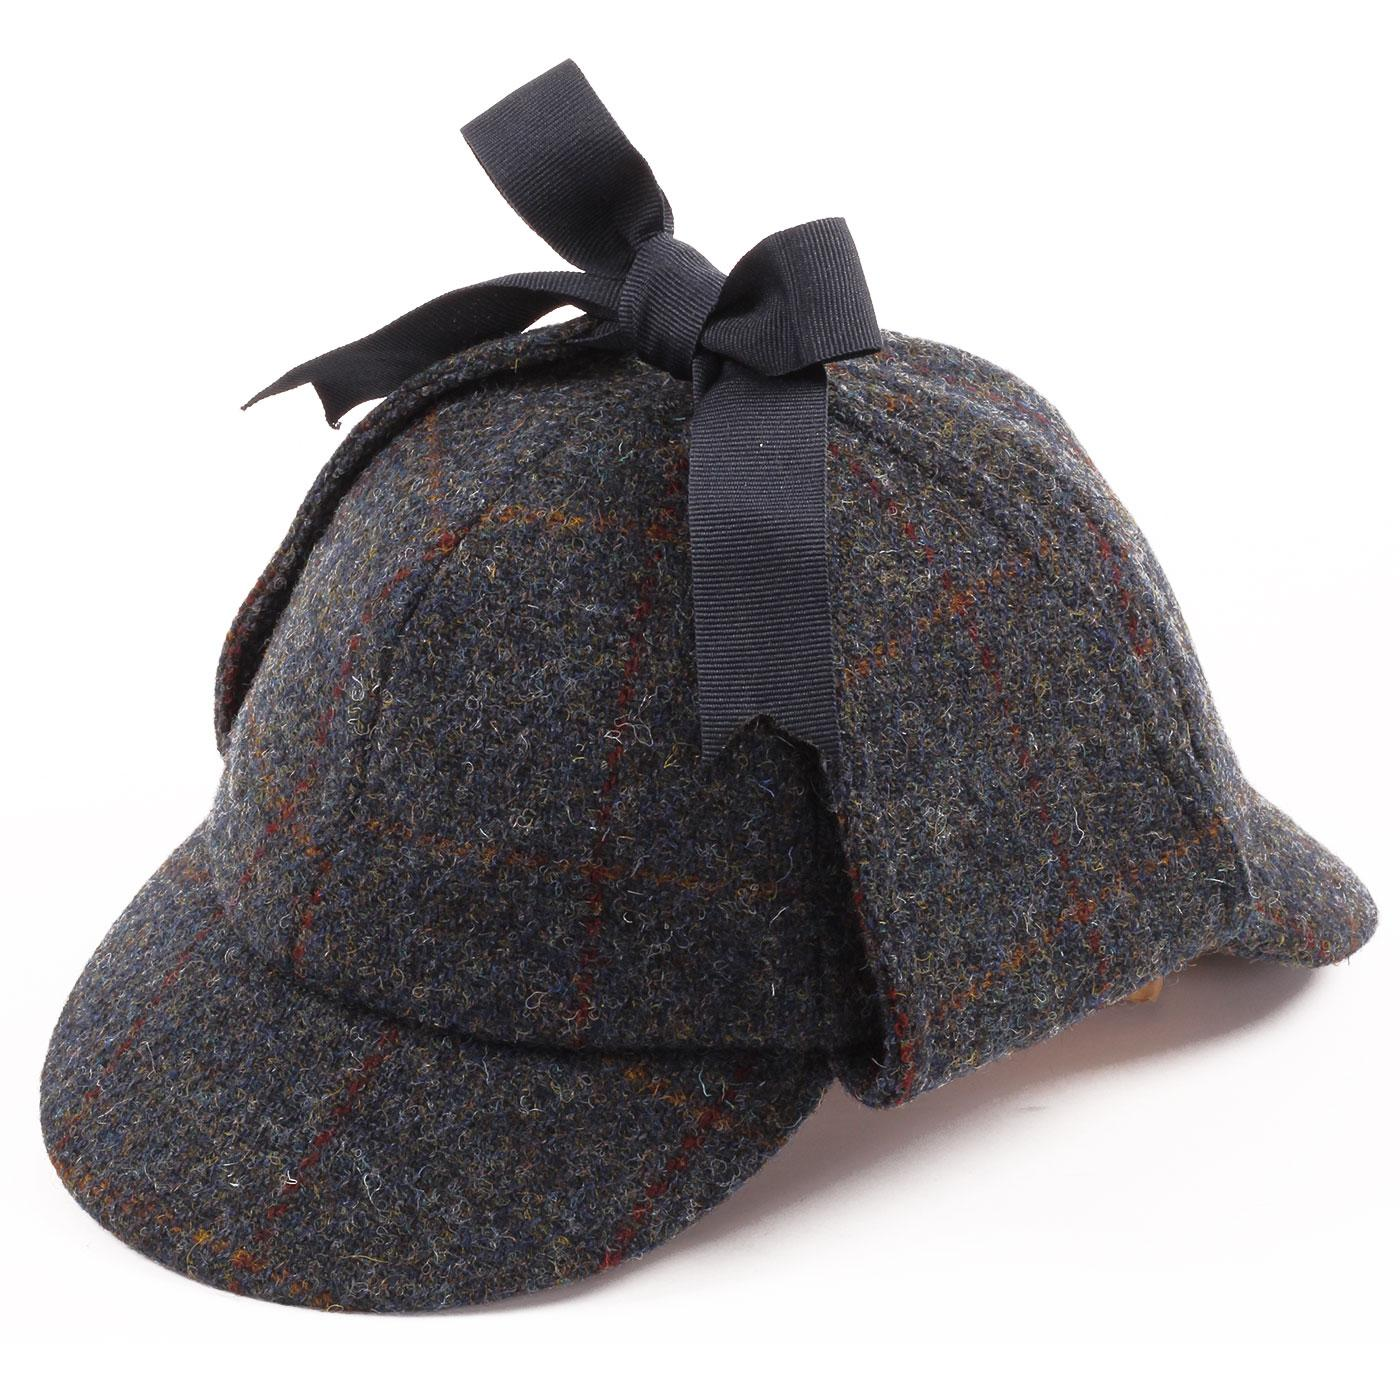 Sherlock FAILSWORTH Harris Tweed Deerstalker Hat B